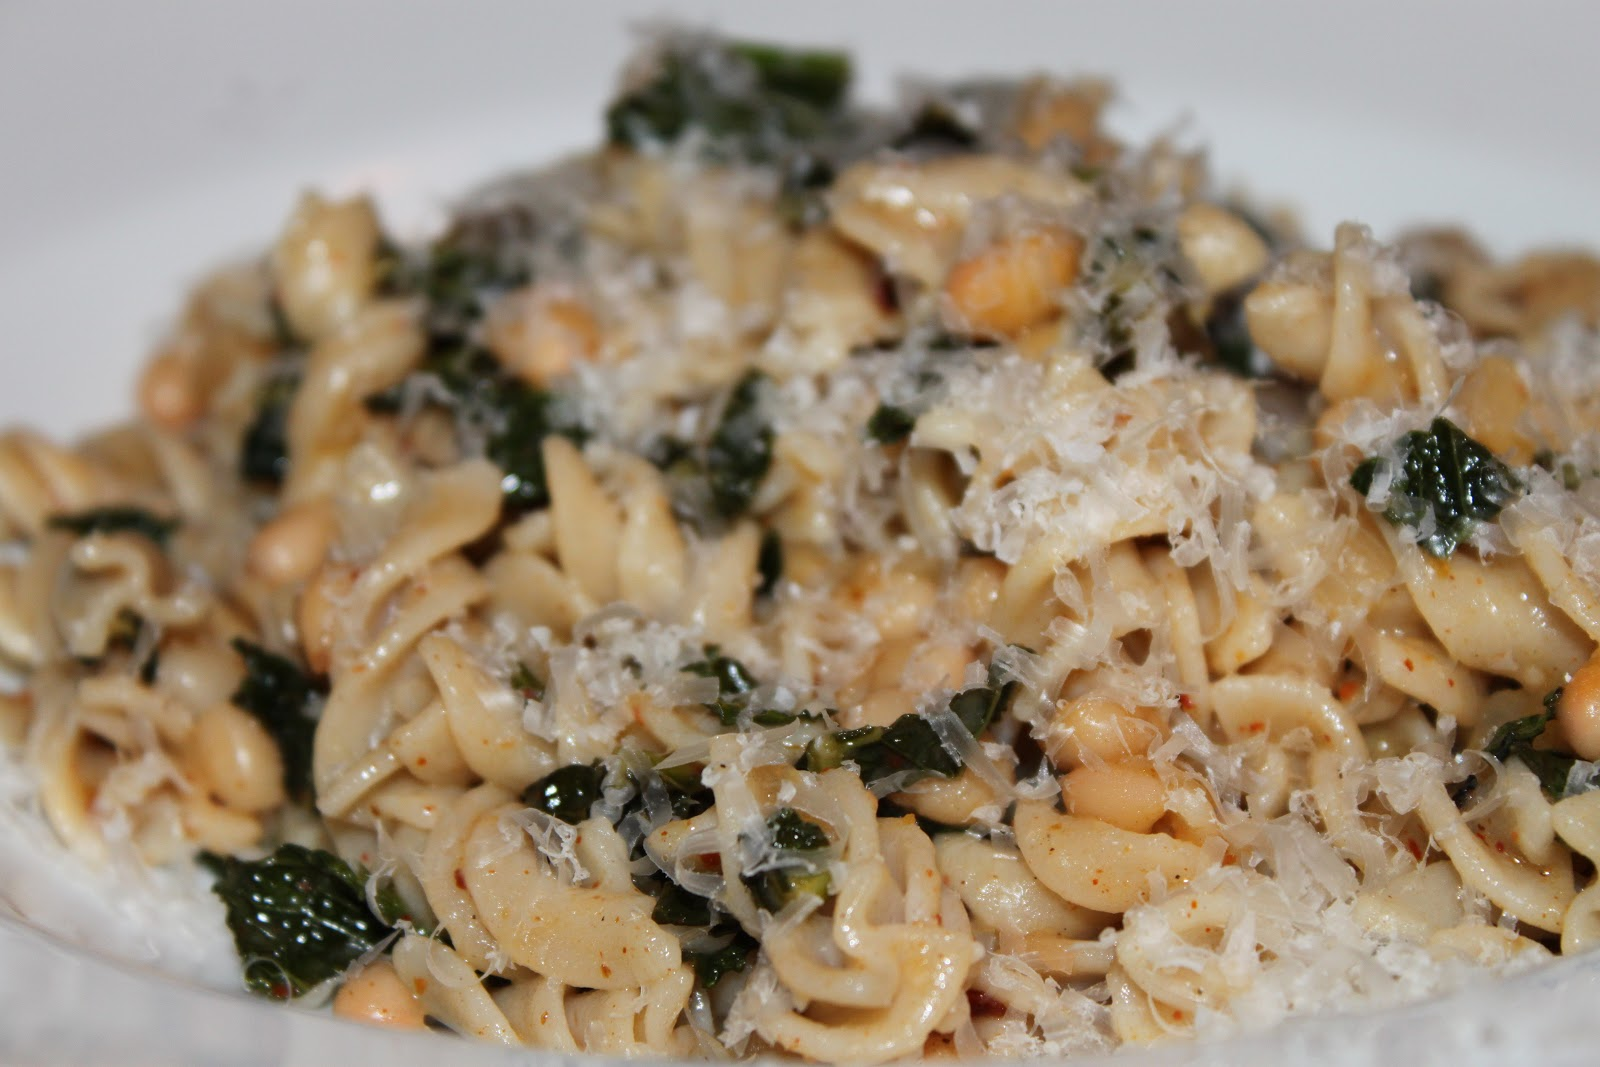 ... Blog: Meatless Monday: Kale & Navy Bean Pasta with Smoked Paprika